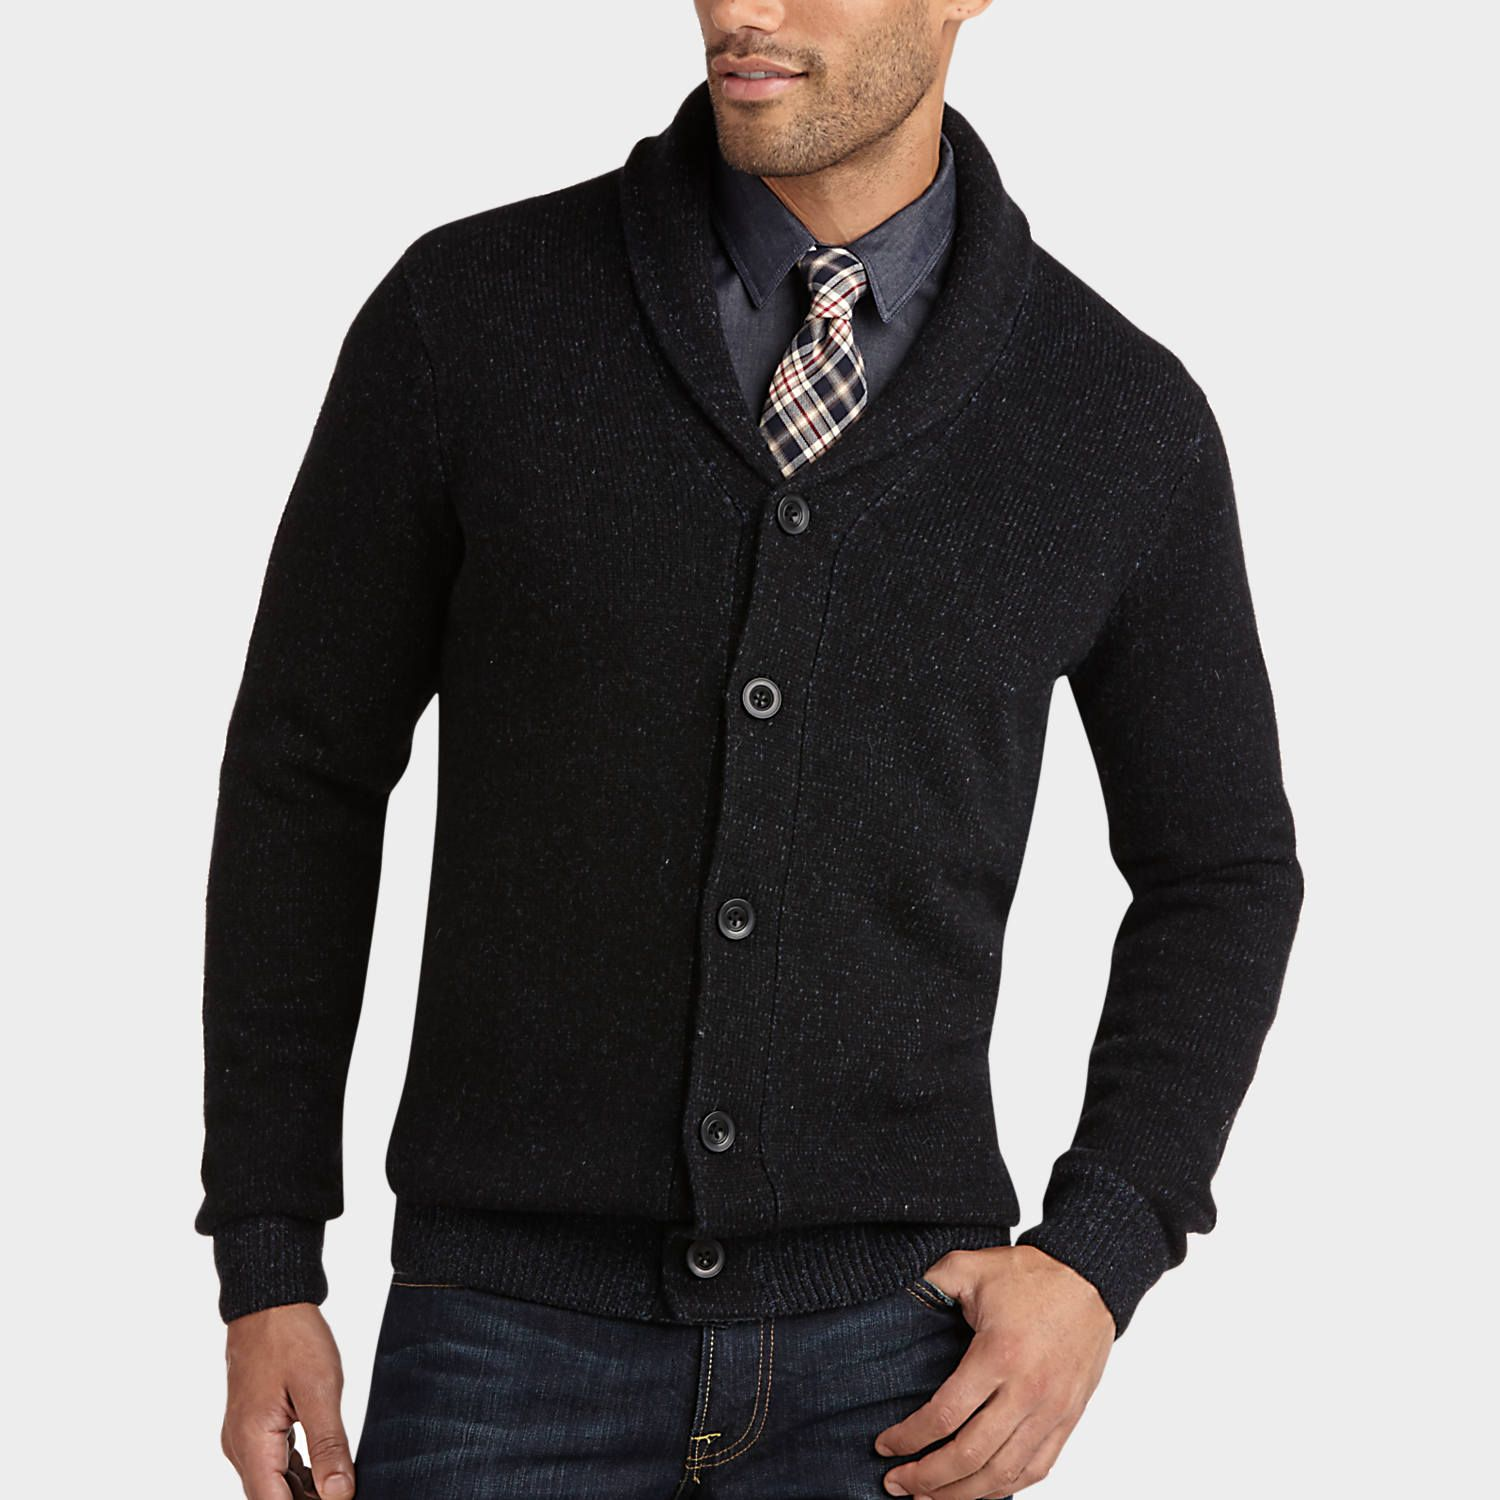 Pronto Blue Shawl-Collar Modern Fit Cardigan Sweater, Black ...